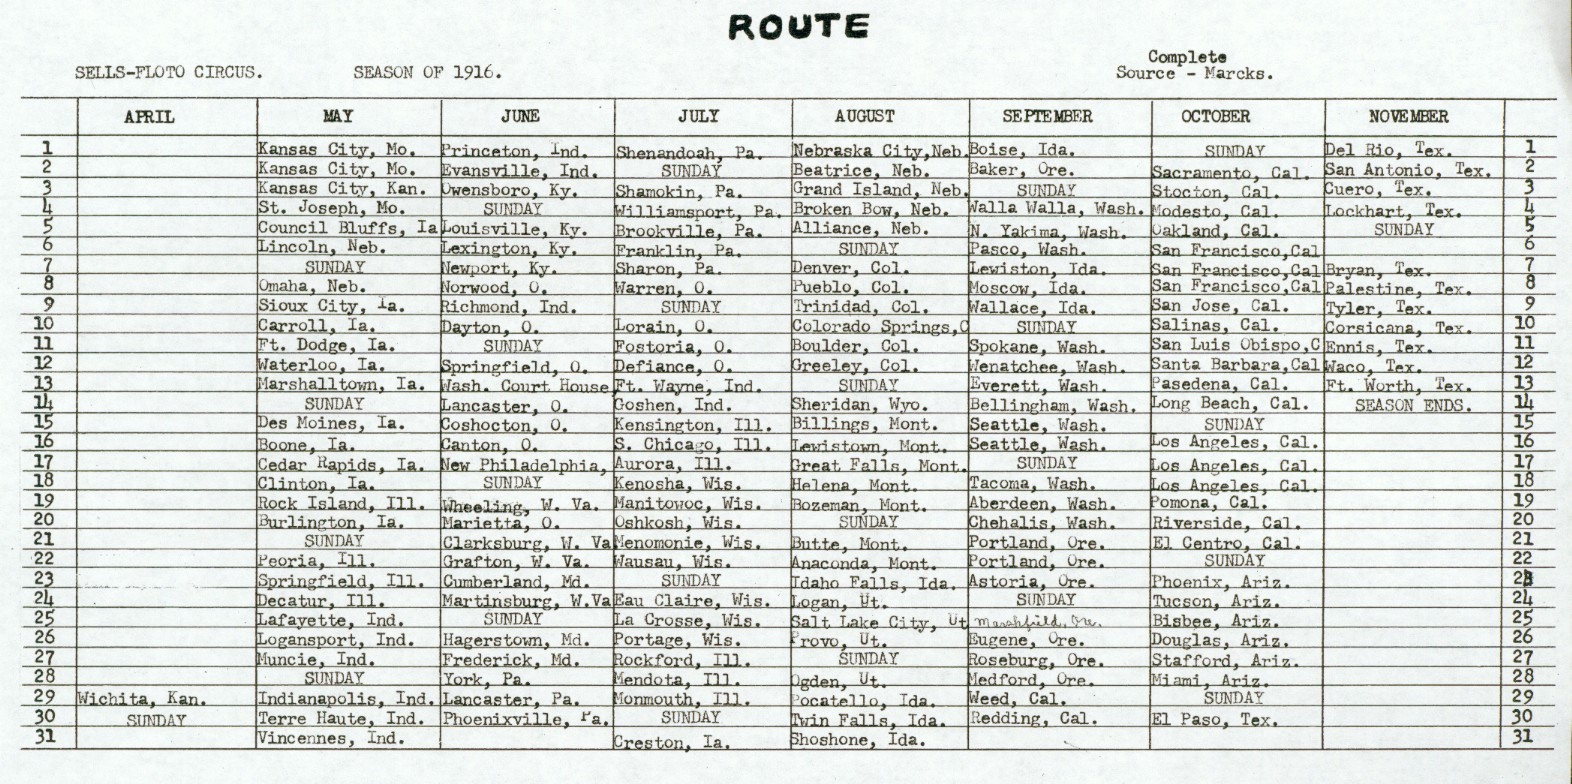 1916 Season Route, Sells-Floto Circus